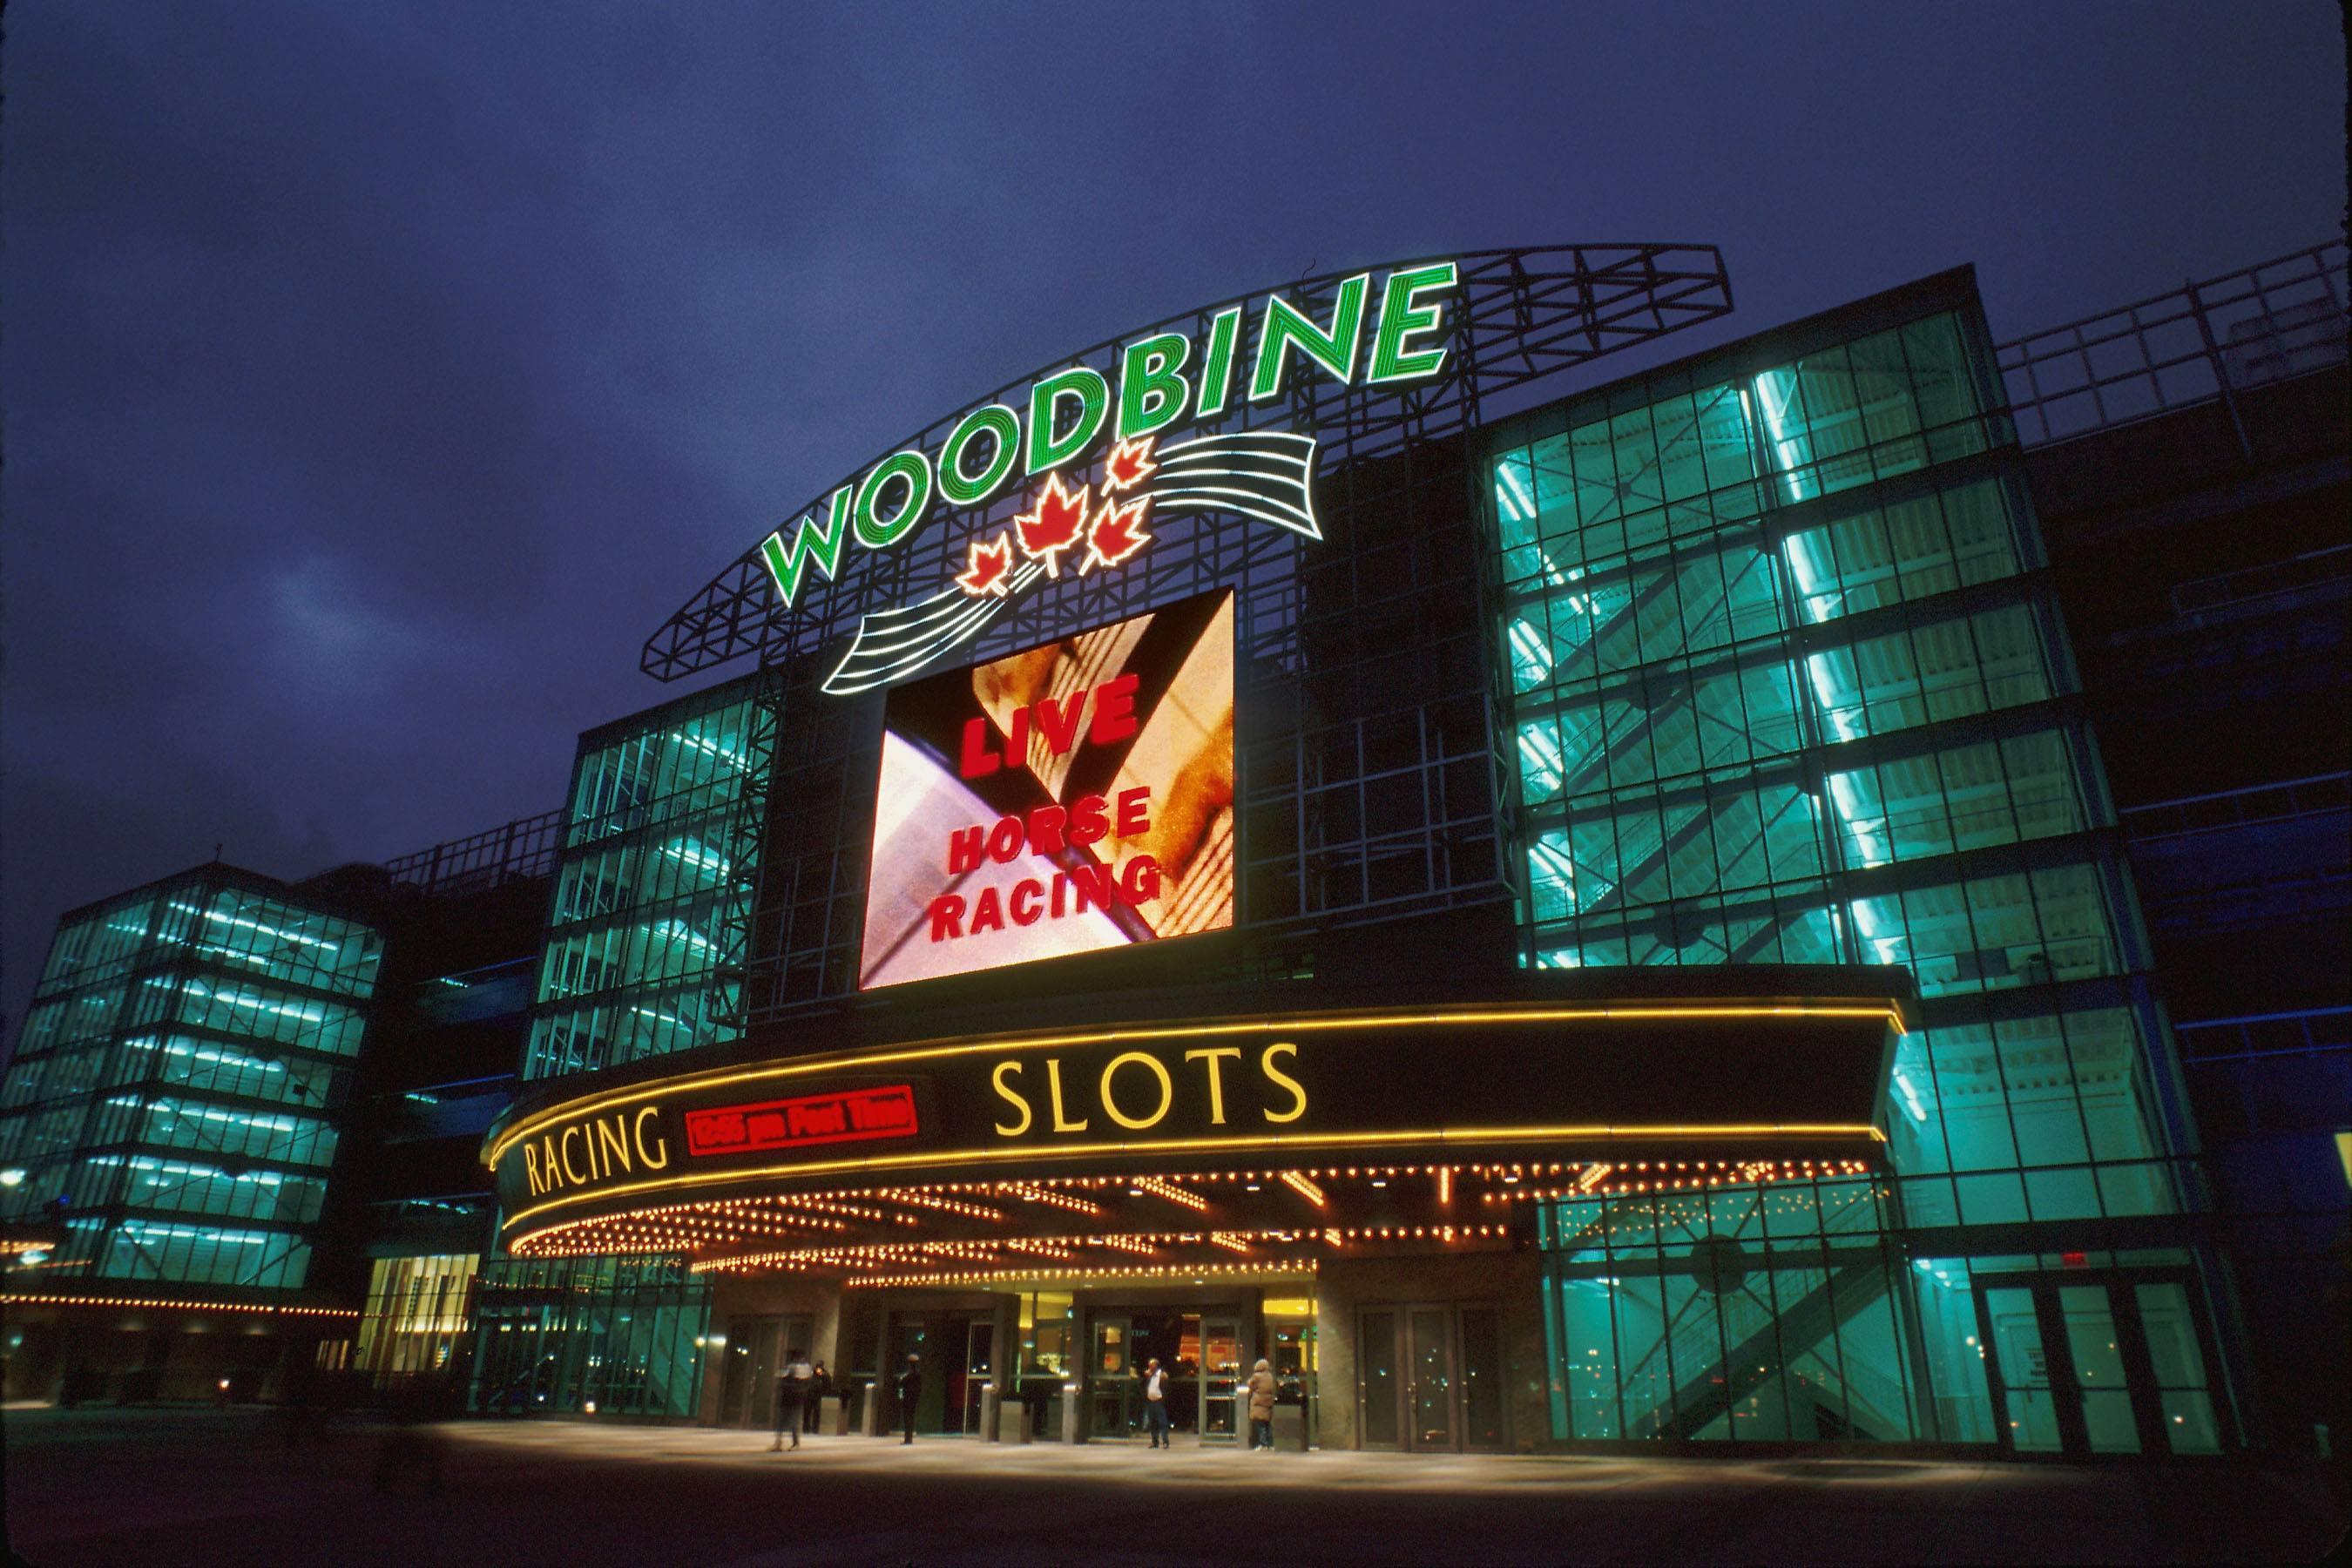 Woodbine Casino Poker